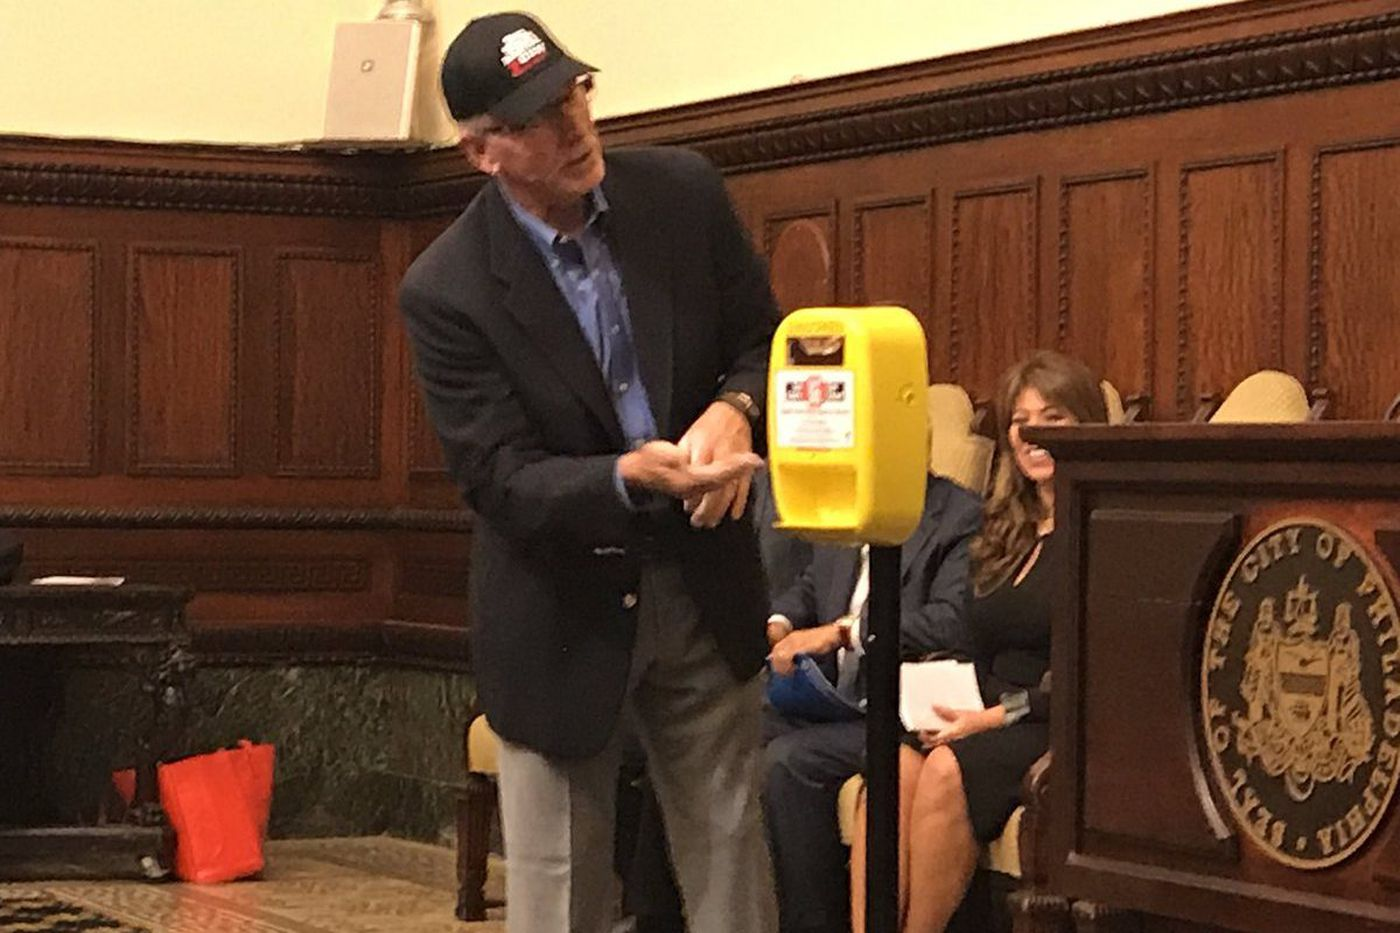 Philly installing free sunscreen dispensers